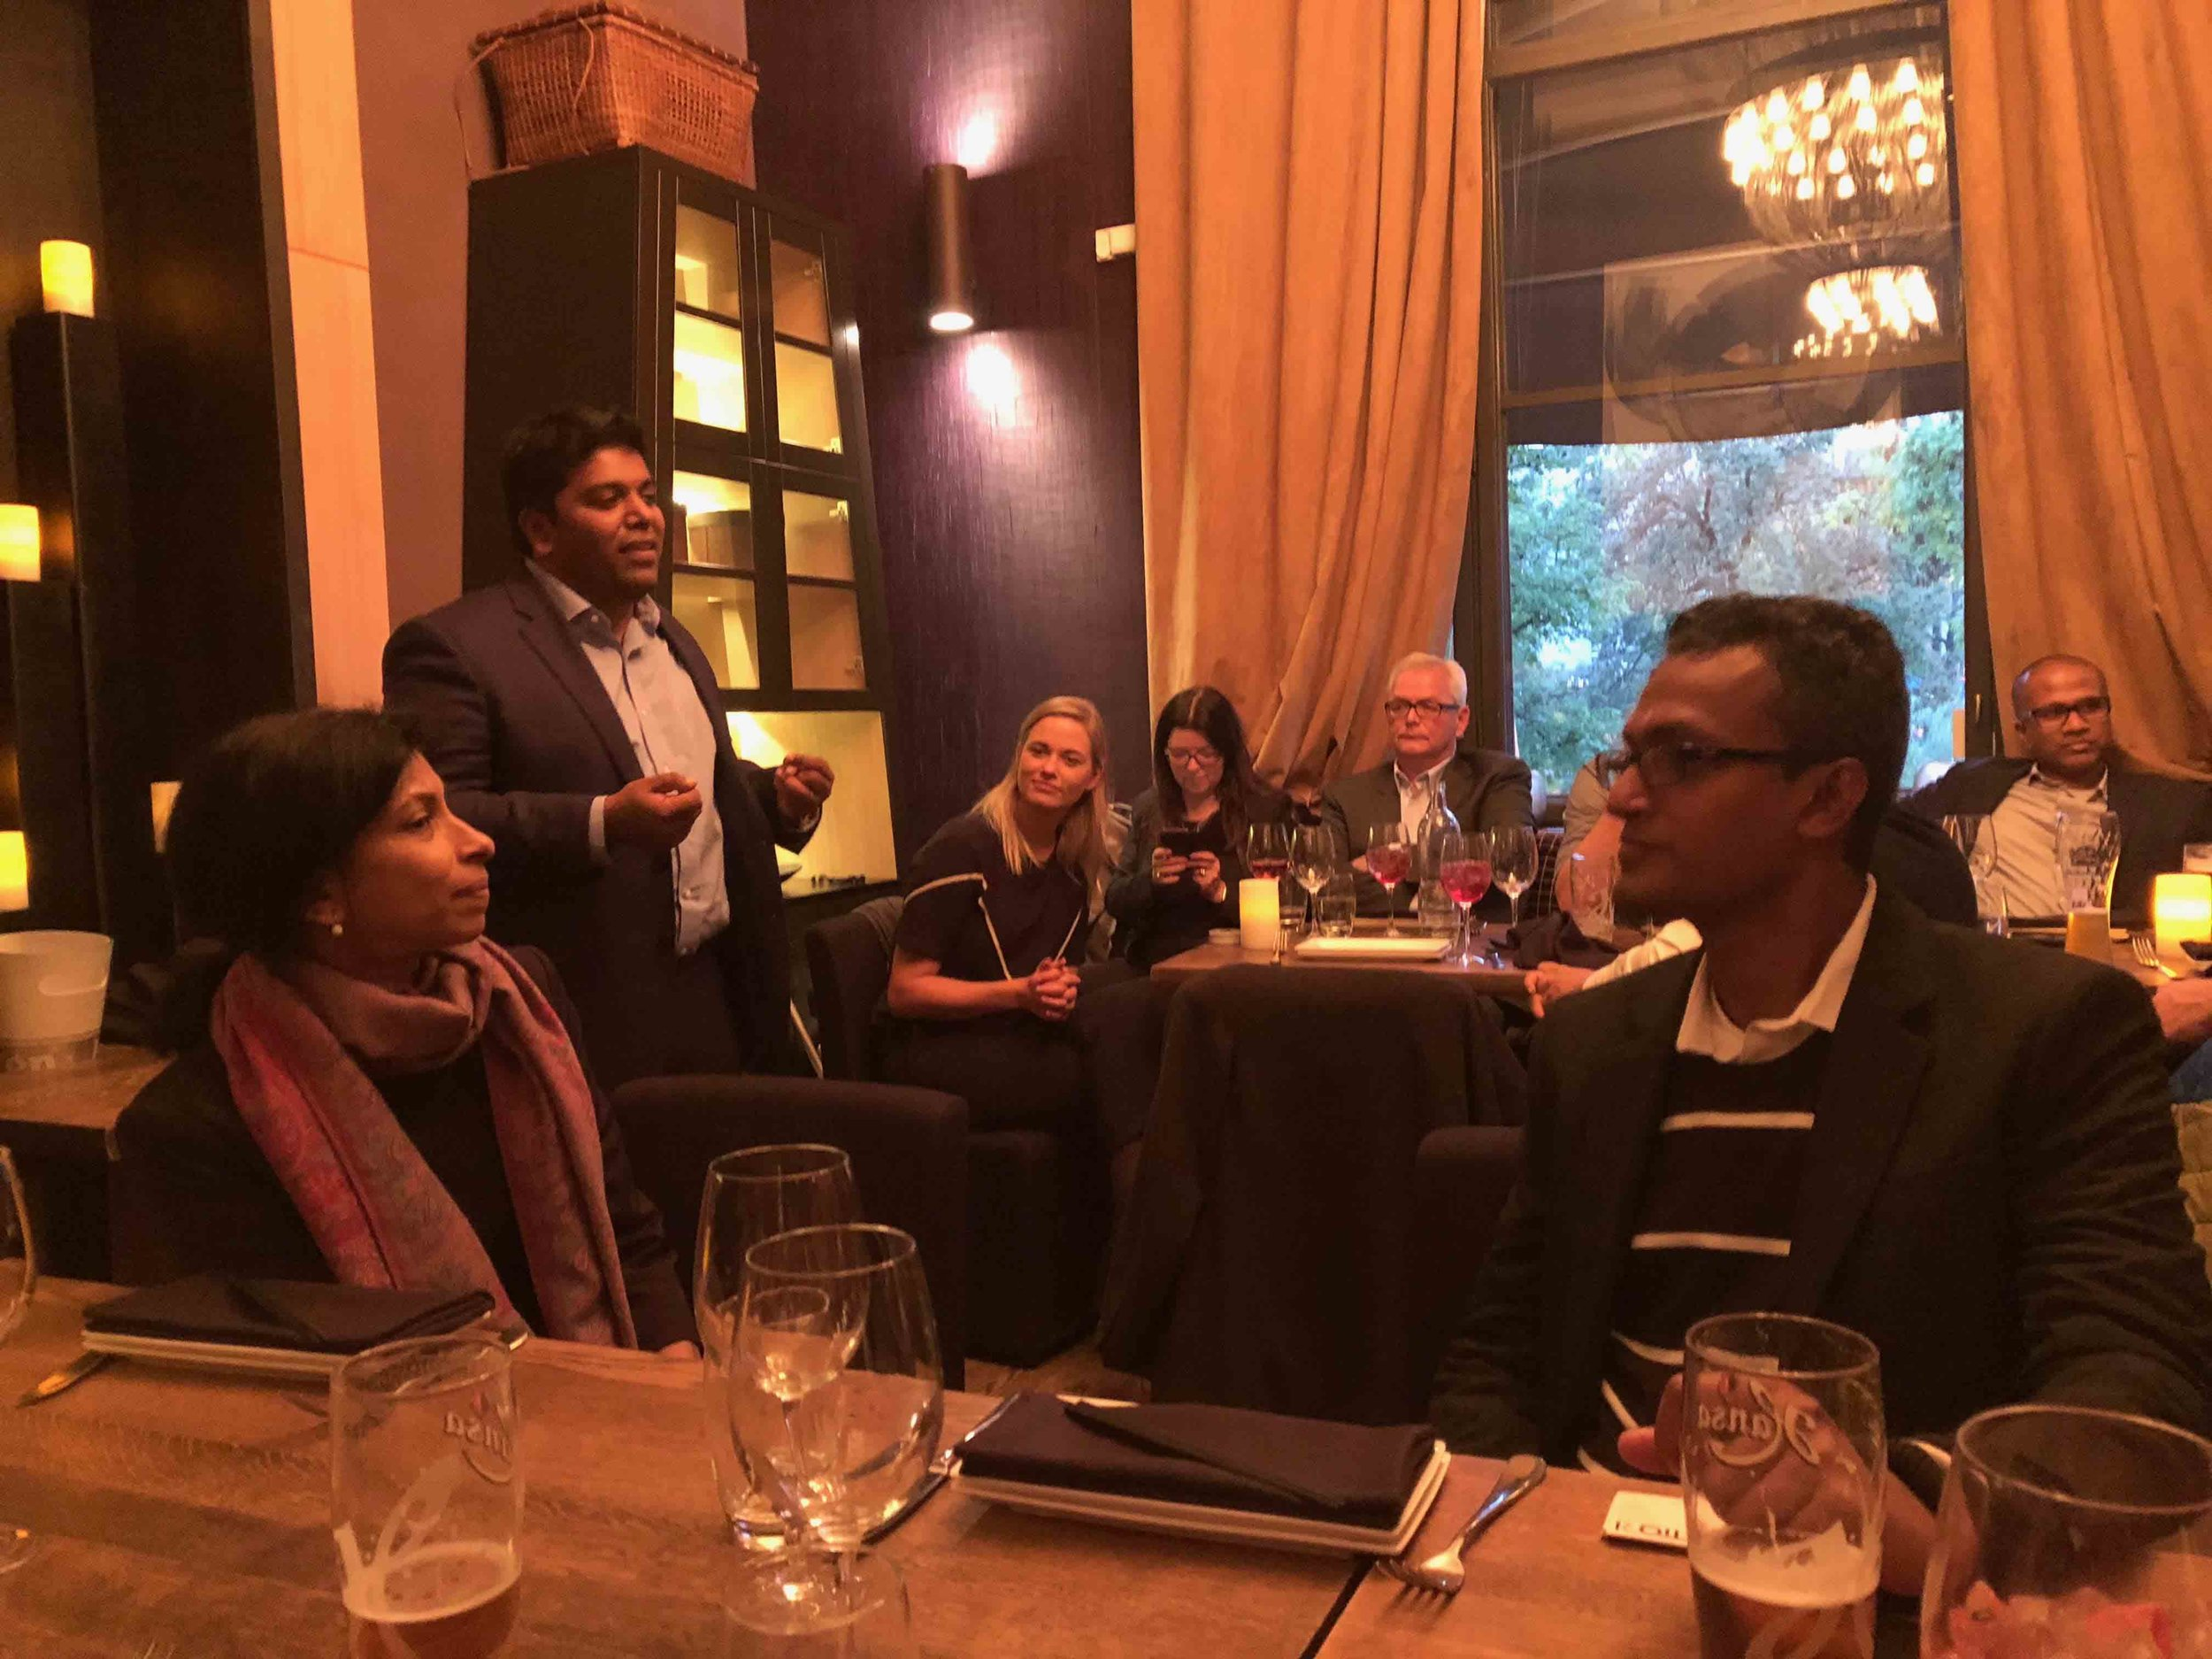 Formal Dinner with the Sri Lankan delegate during the Oslo Innovation Week 2018! - 25.09.2018 - Südøst Restaurant, Oslo - Once again, some of Sri Lanka's most promising tech startups were invited to pitch at the Oslo Innovation Week, and once again, there was a reception dinner. The guests included the Ambassador of Sri Lanka, Oslo municipality, TIQRI, ICT Norway, Tin etc. Why are the Sri Lankan and Norwegian business relations in tech getting so much attention, on the contrary of a history of strenous peace negotiations between them?As how the CEO of TIQRI Finn Worm-Petersen eloquently put it; despite being on two separate continents, Norway and Sri Lanka share crucial similarities, business-wise. Stuff like, similar work ethics and culture, sizes of companies, overlapping technologies etc. Tin was present, partly sharing his perspectives on tech communities, but also entertaining the guests with a joke or two.